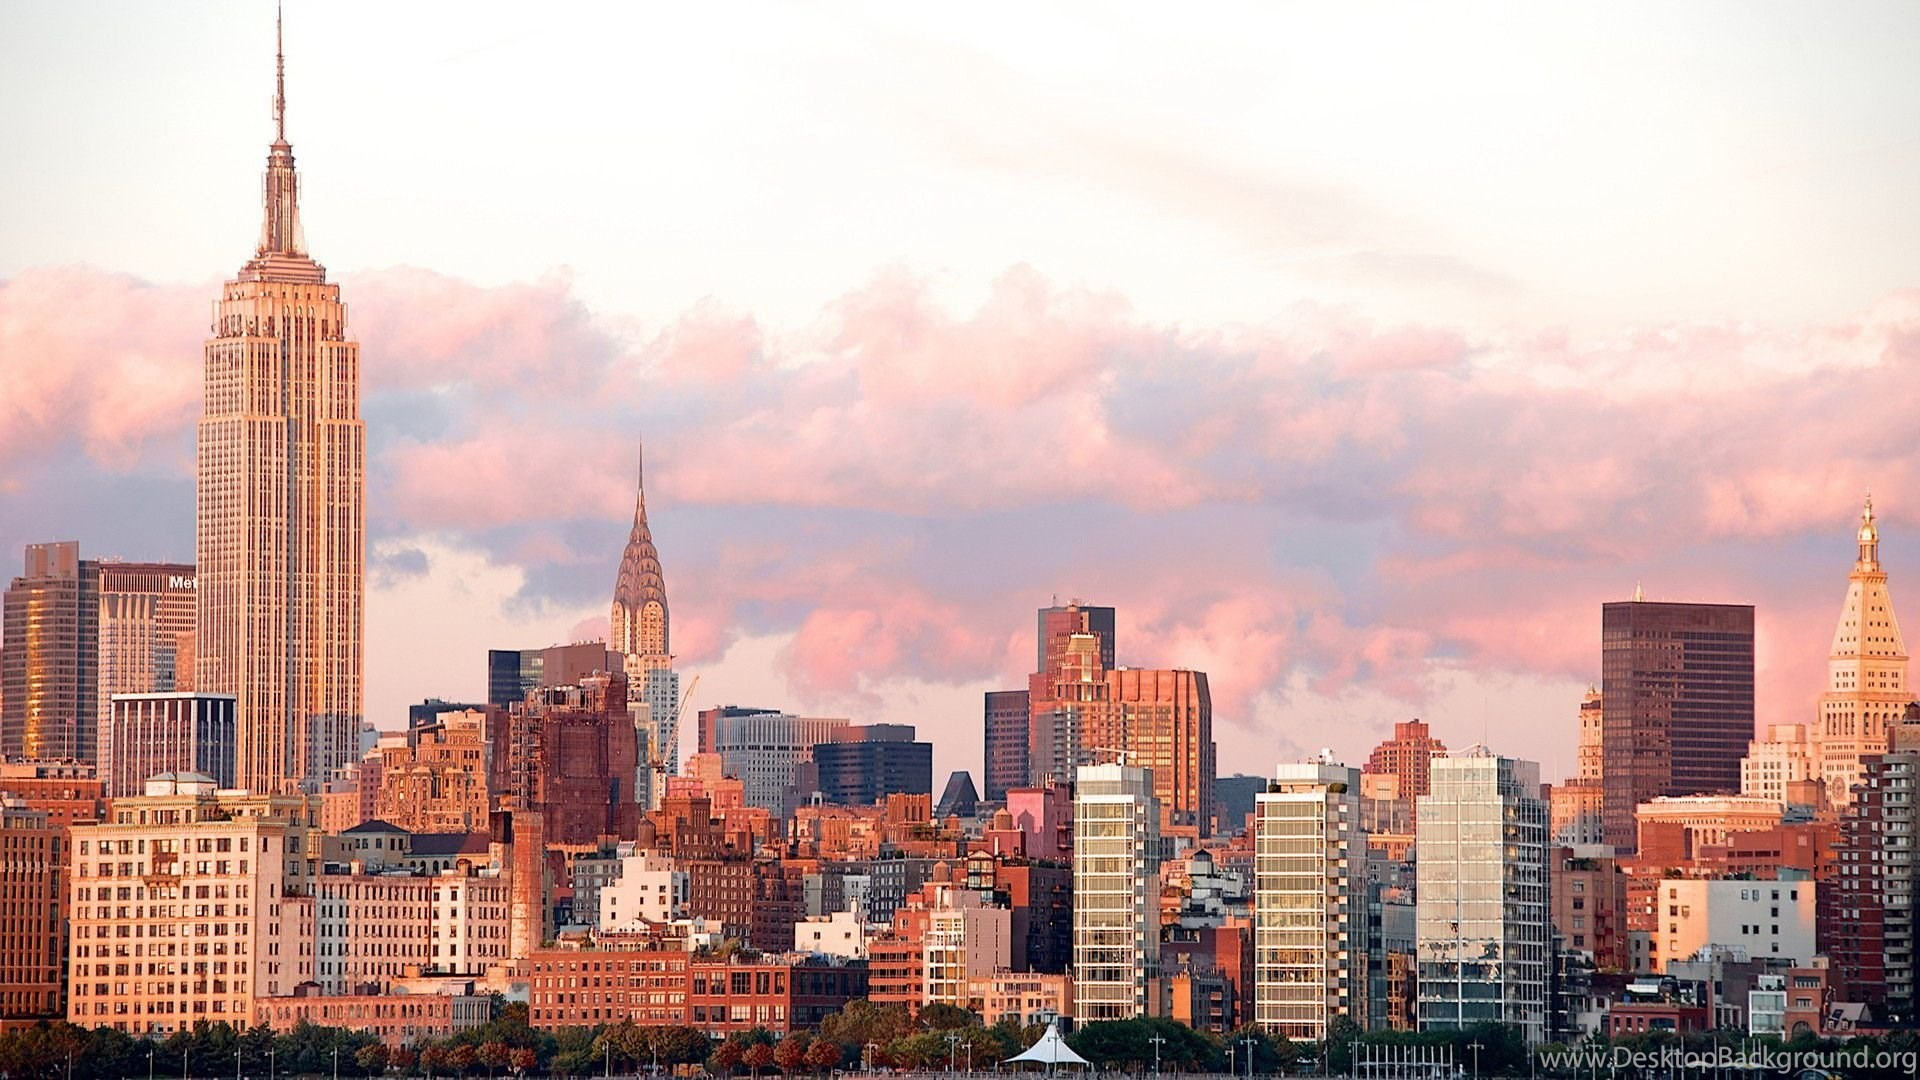 Hd best new york city wallpapers 19201080 full size desktop popular voltagebd Image collections